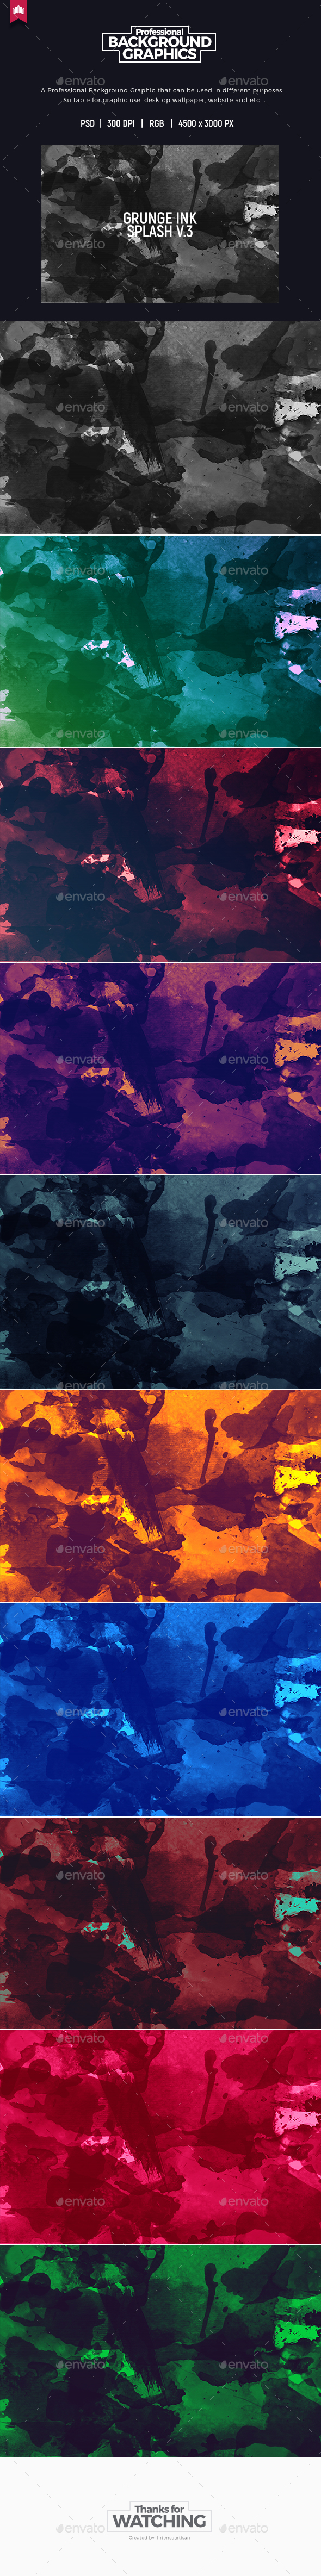 Grunge Ink Splash - Background - Abstract Backgrounds